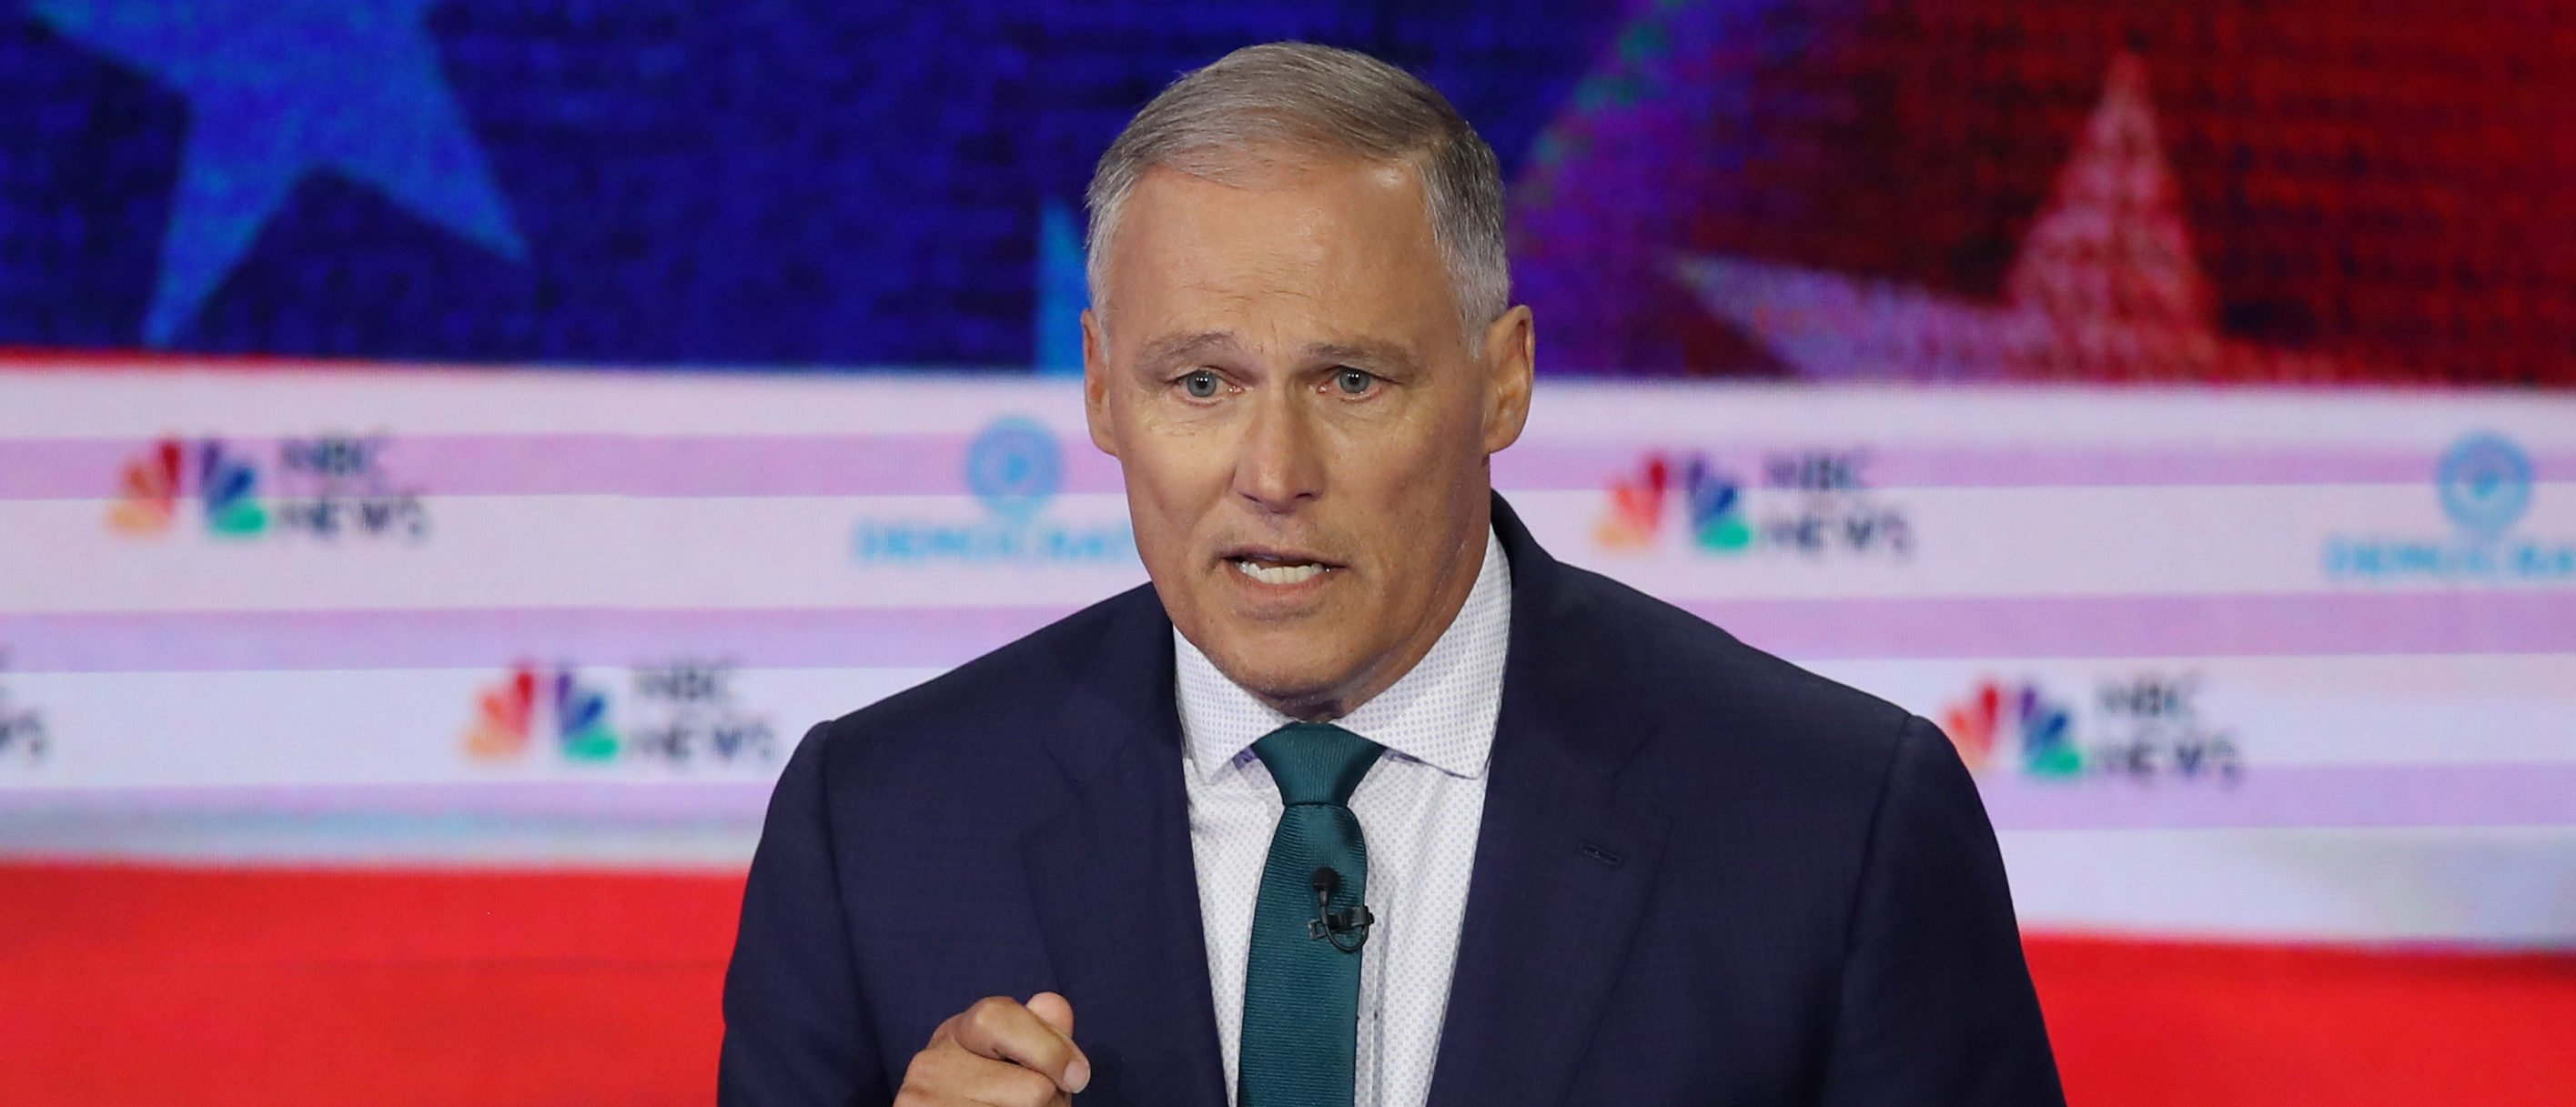 Washington Gov. Jay Inslee speaks during the first night of the Democratic presidential debate on June 26, 2019 in Miami, Florida. (Joe Raedle/Getty Images)